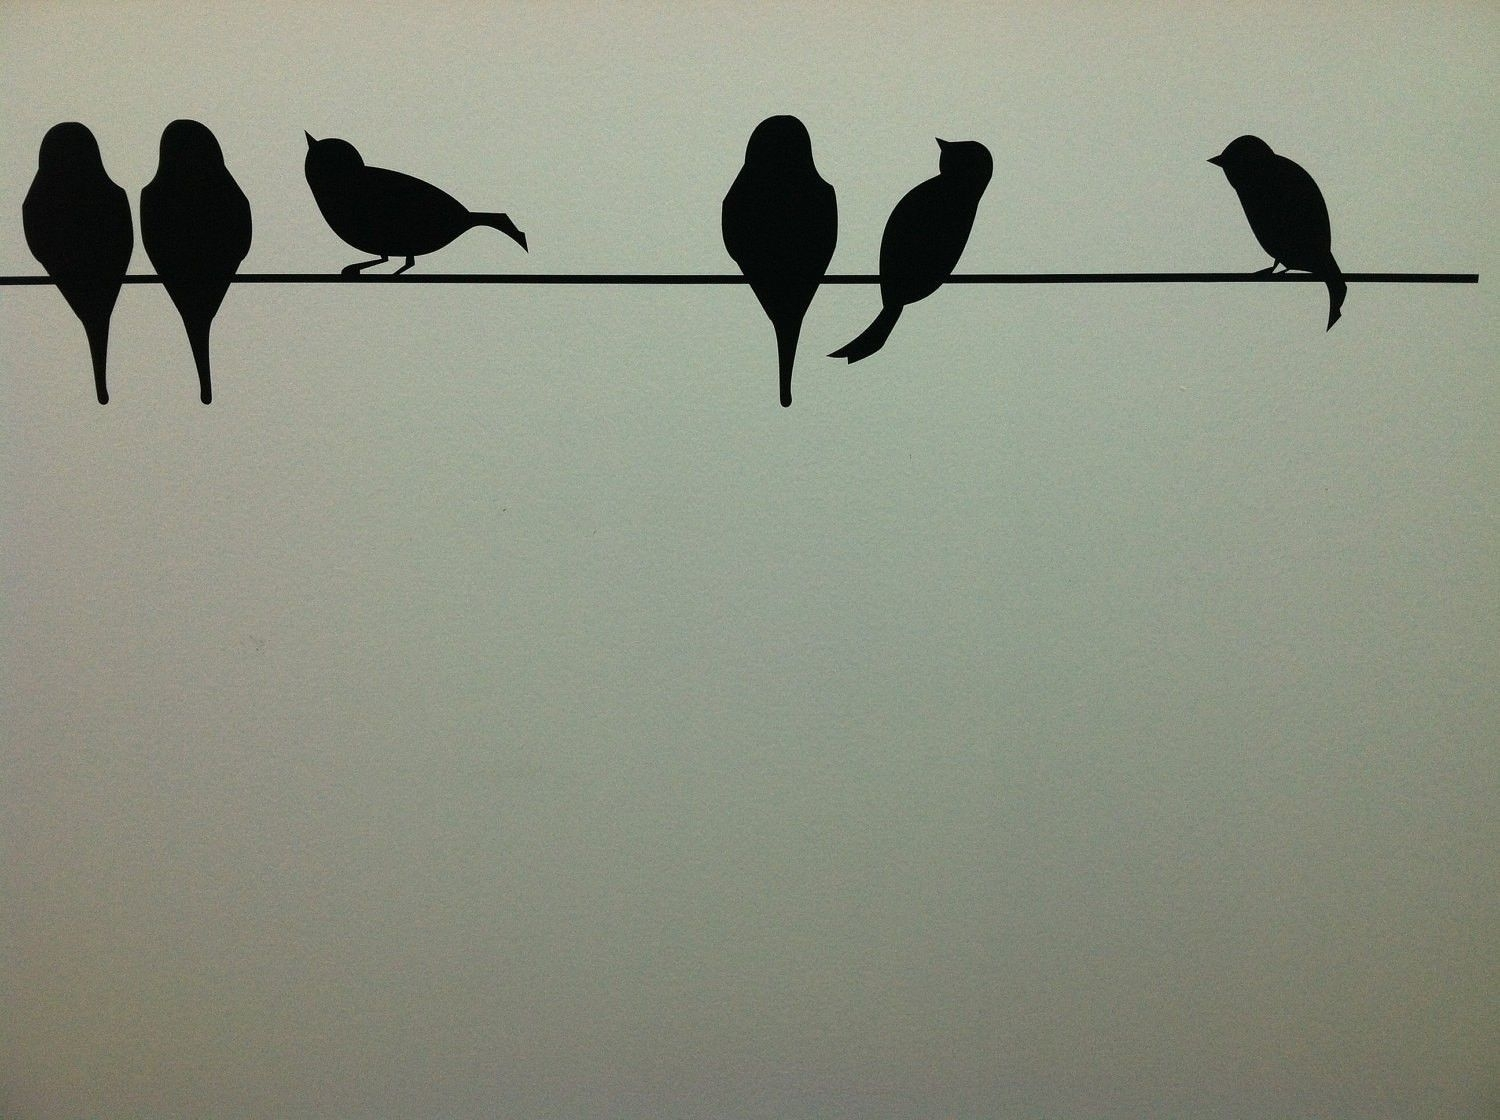 Awesome Birds On A Wire Wall Decor Unique Vinyl Lettering Art Pict Inside Best And Newest Birds On A Wire Wall Art (View 11 of 20)